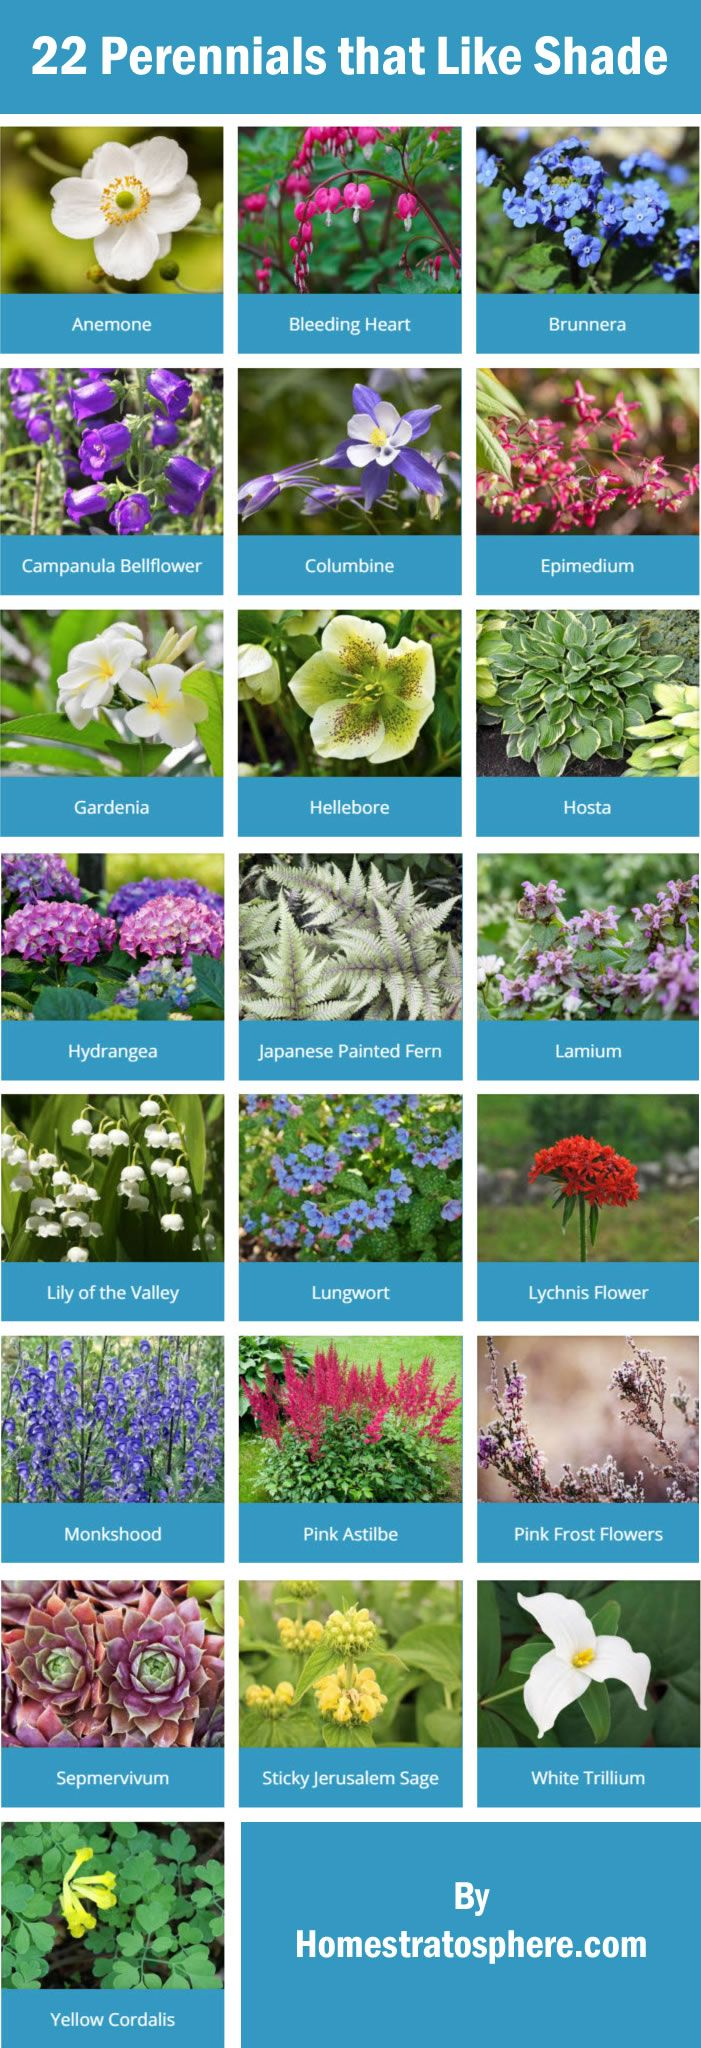 180 perennials that do well in shade a to z zahrada pinterest 22 perennials that like shade mightylinksfo